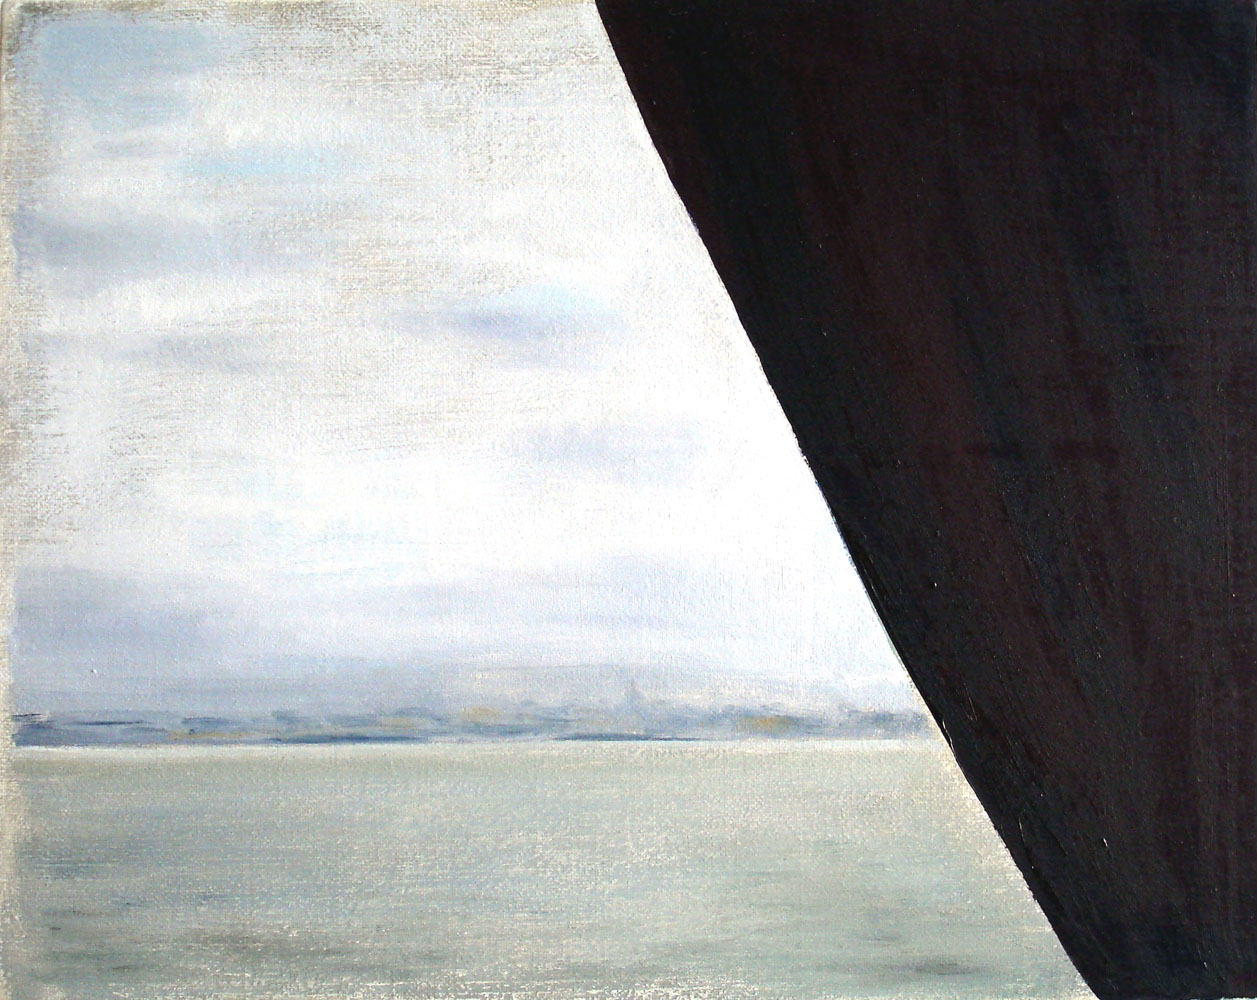 Winter Ferry    2007, oil on canvas, 24 x 30cm